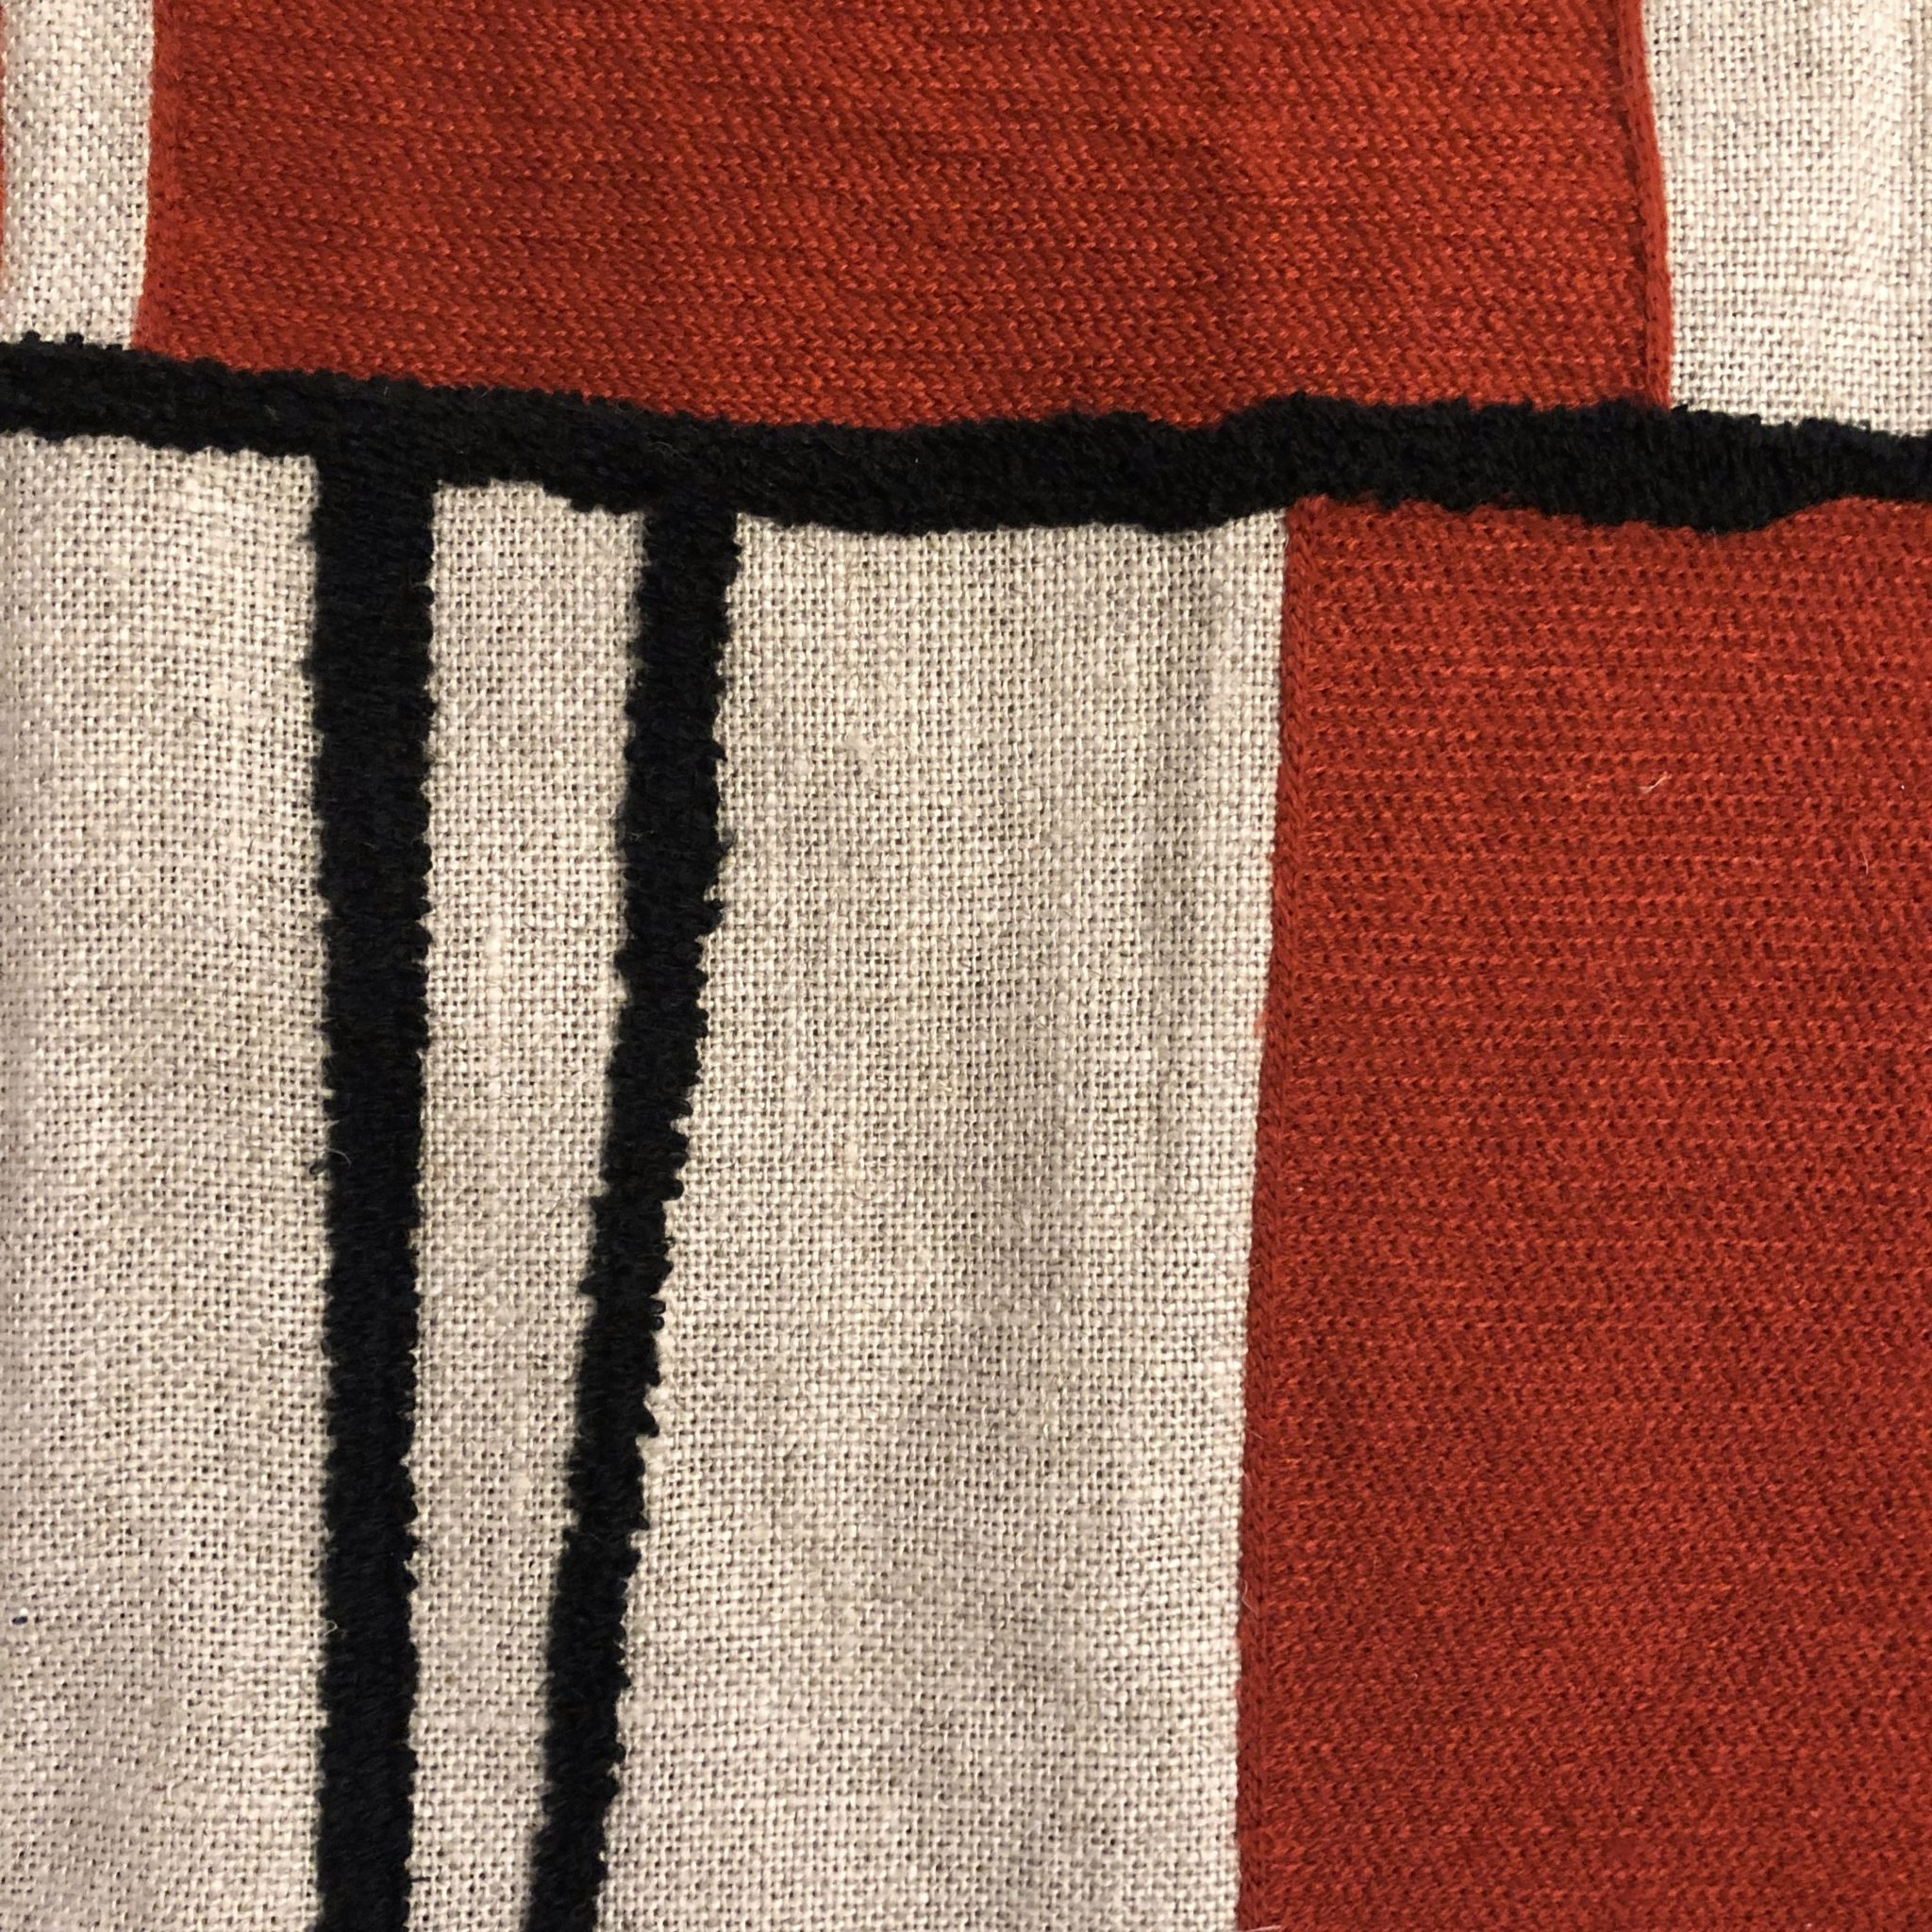 Detail of 'Zeppelin Coquelicot' (07948002) from Boussac